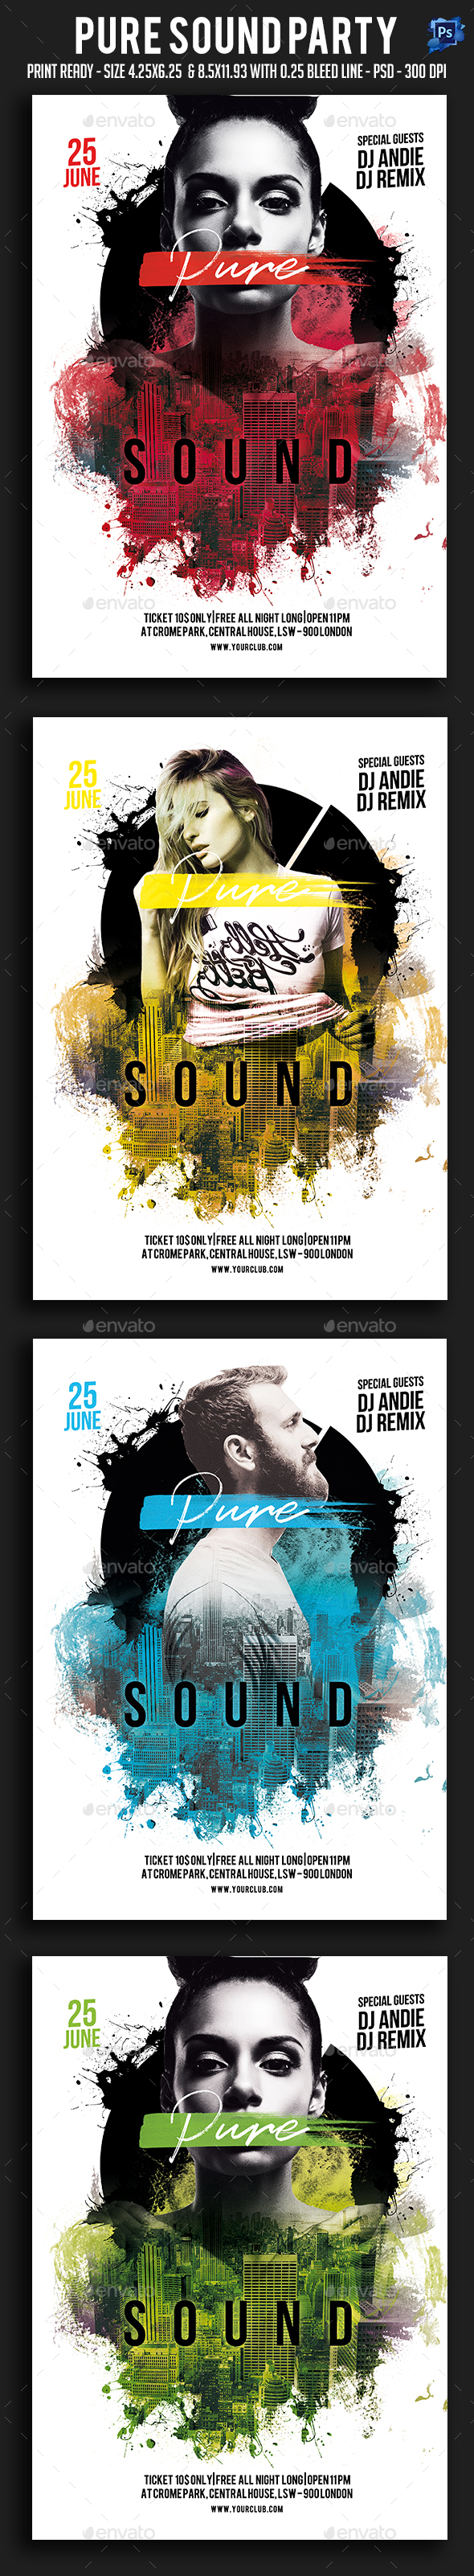 Pure Sound Party Flyer - Clubs & Parties Events